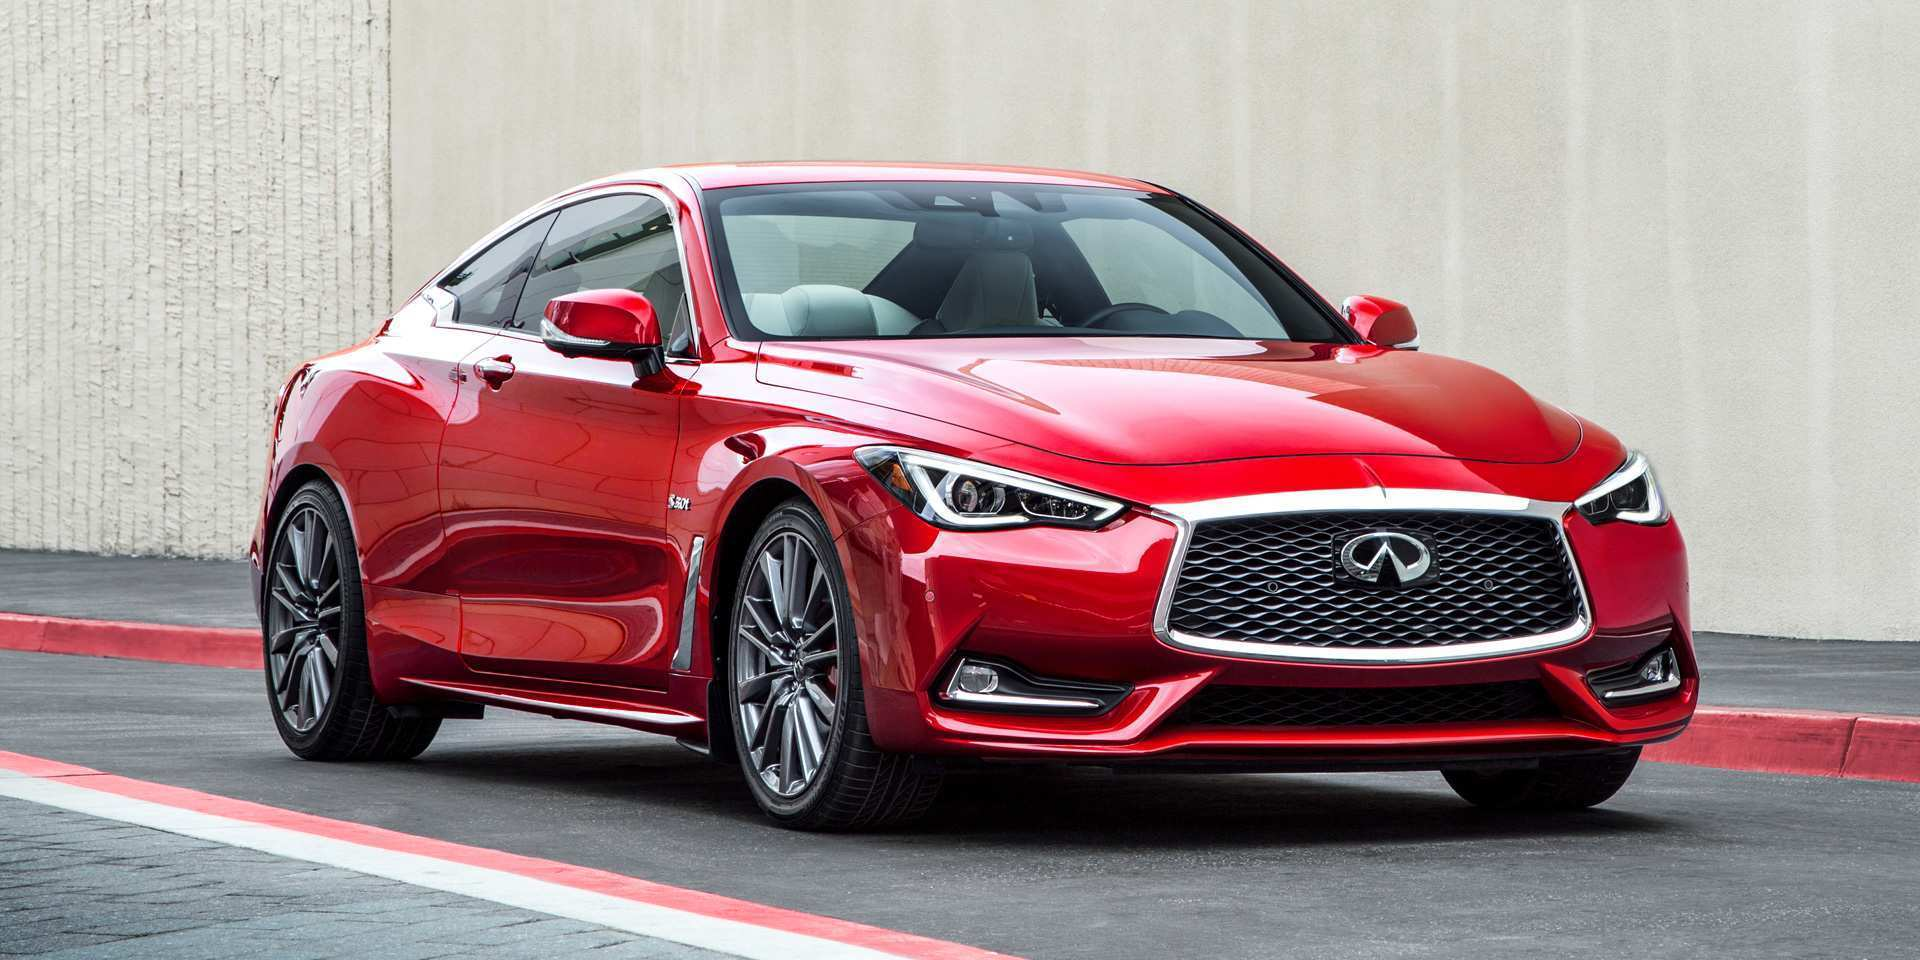 16 The 2019 Infiniti Q60 Coupe Convertible Exterior And Interior